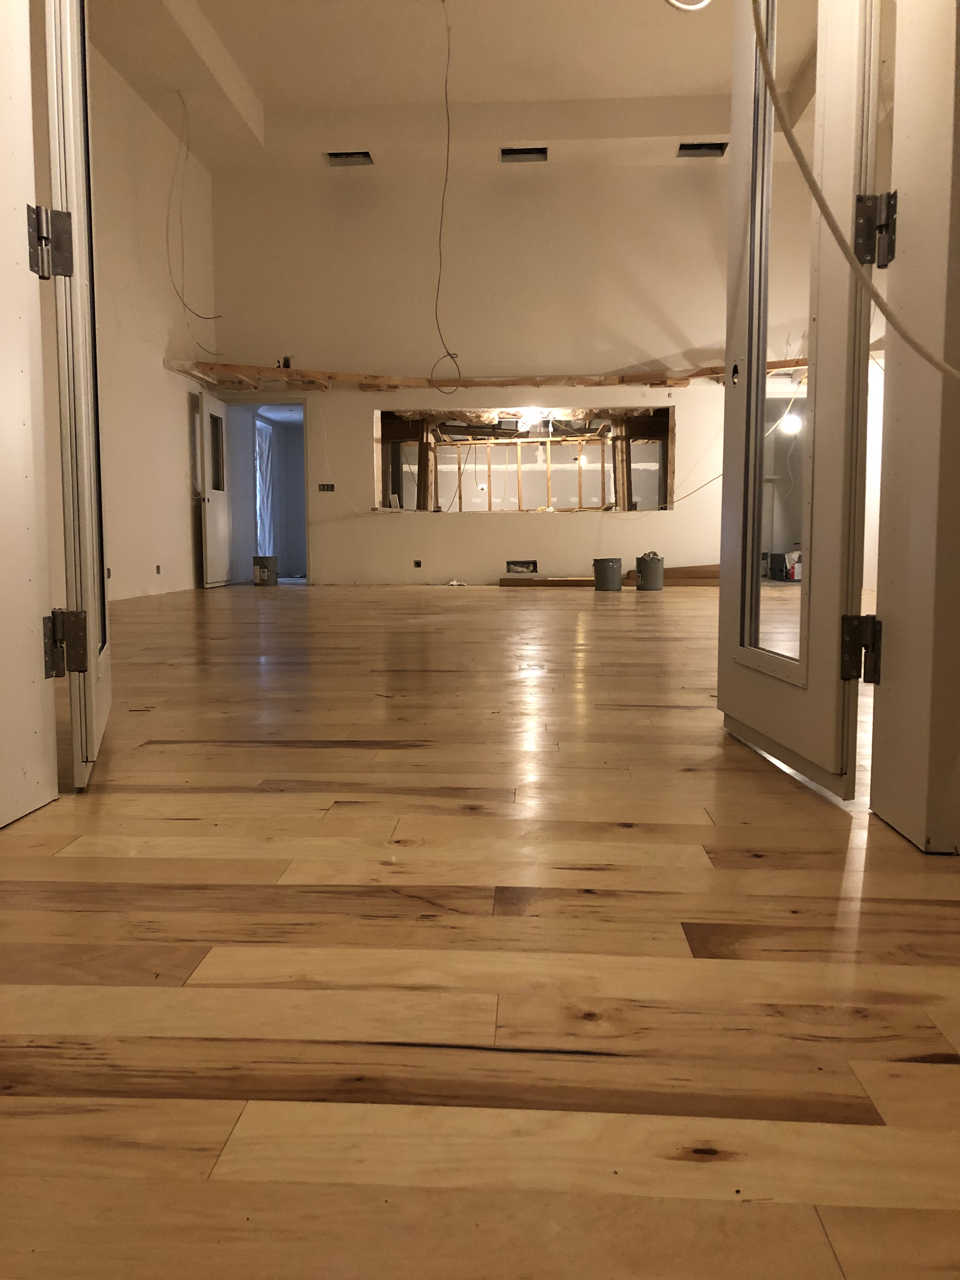 The most exciting thing this week was definitely the arrival and installation of the hickory flooring in studio 1. This photo is looking out of one of the iso booths in studio 1 toward the control room.